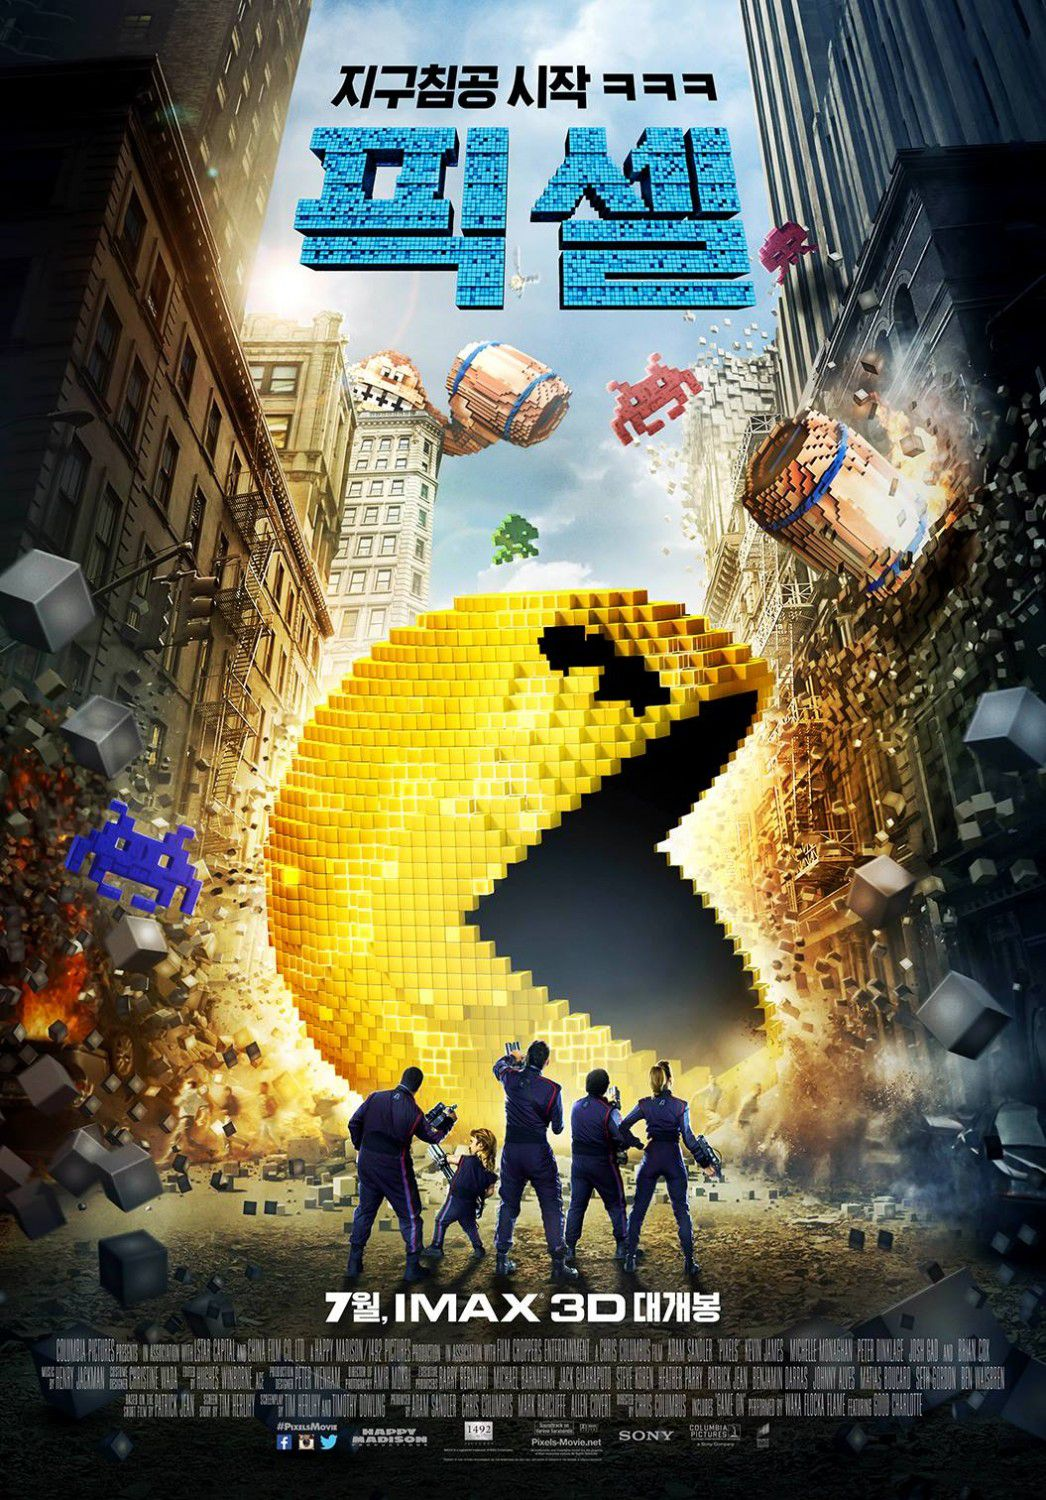 Film: Pixels (movie 2015)